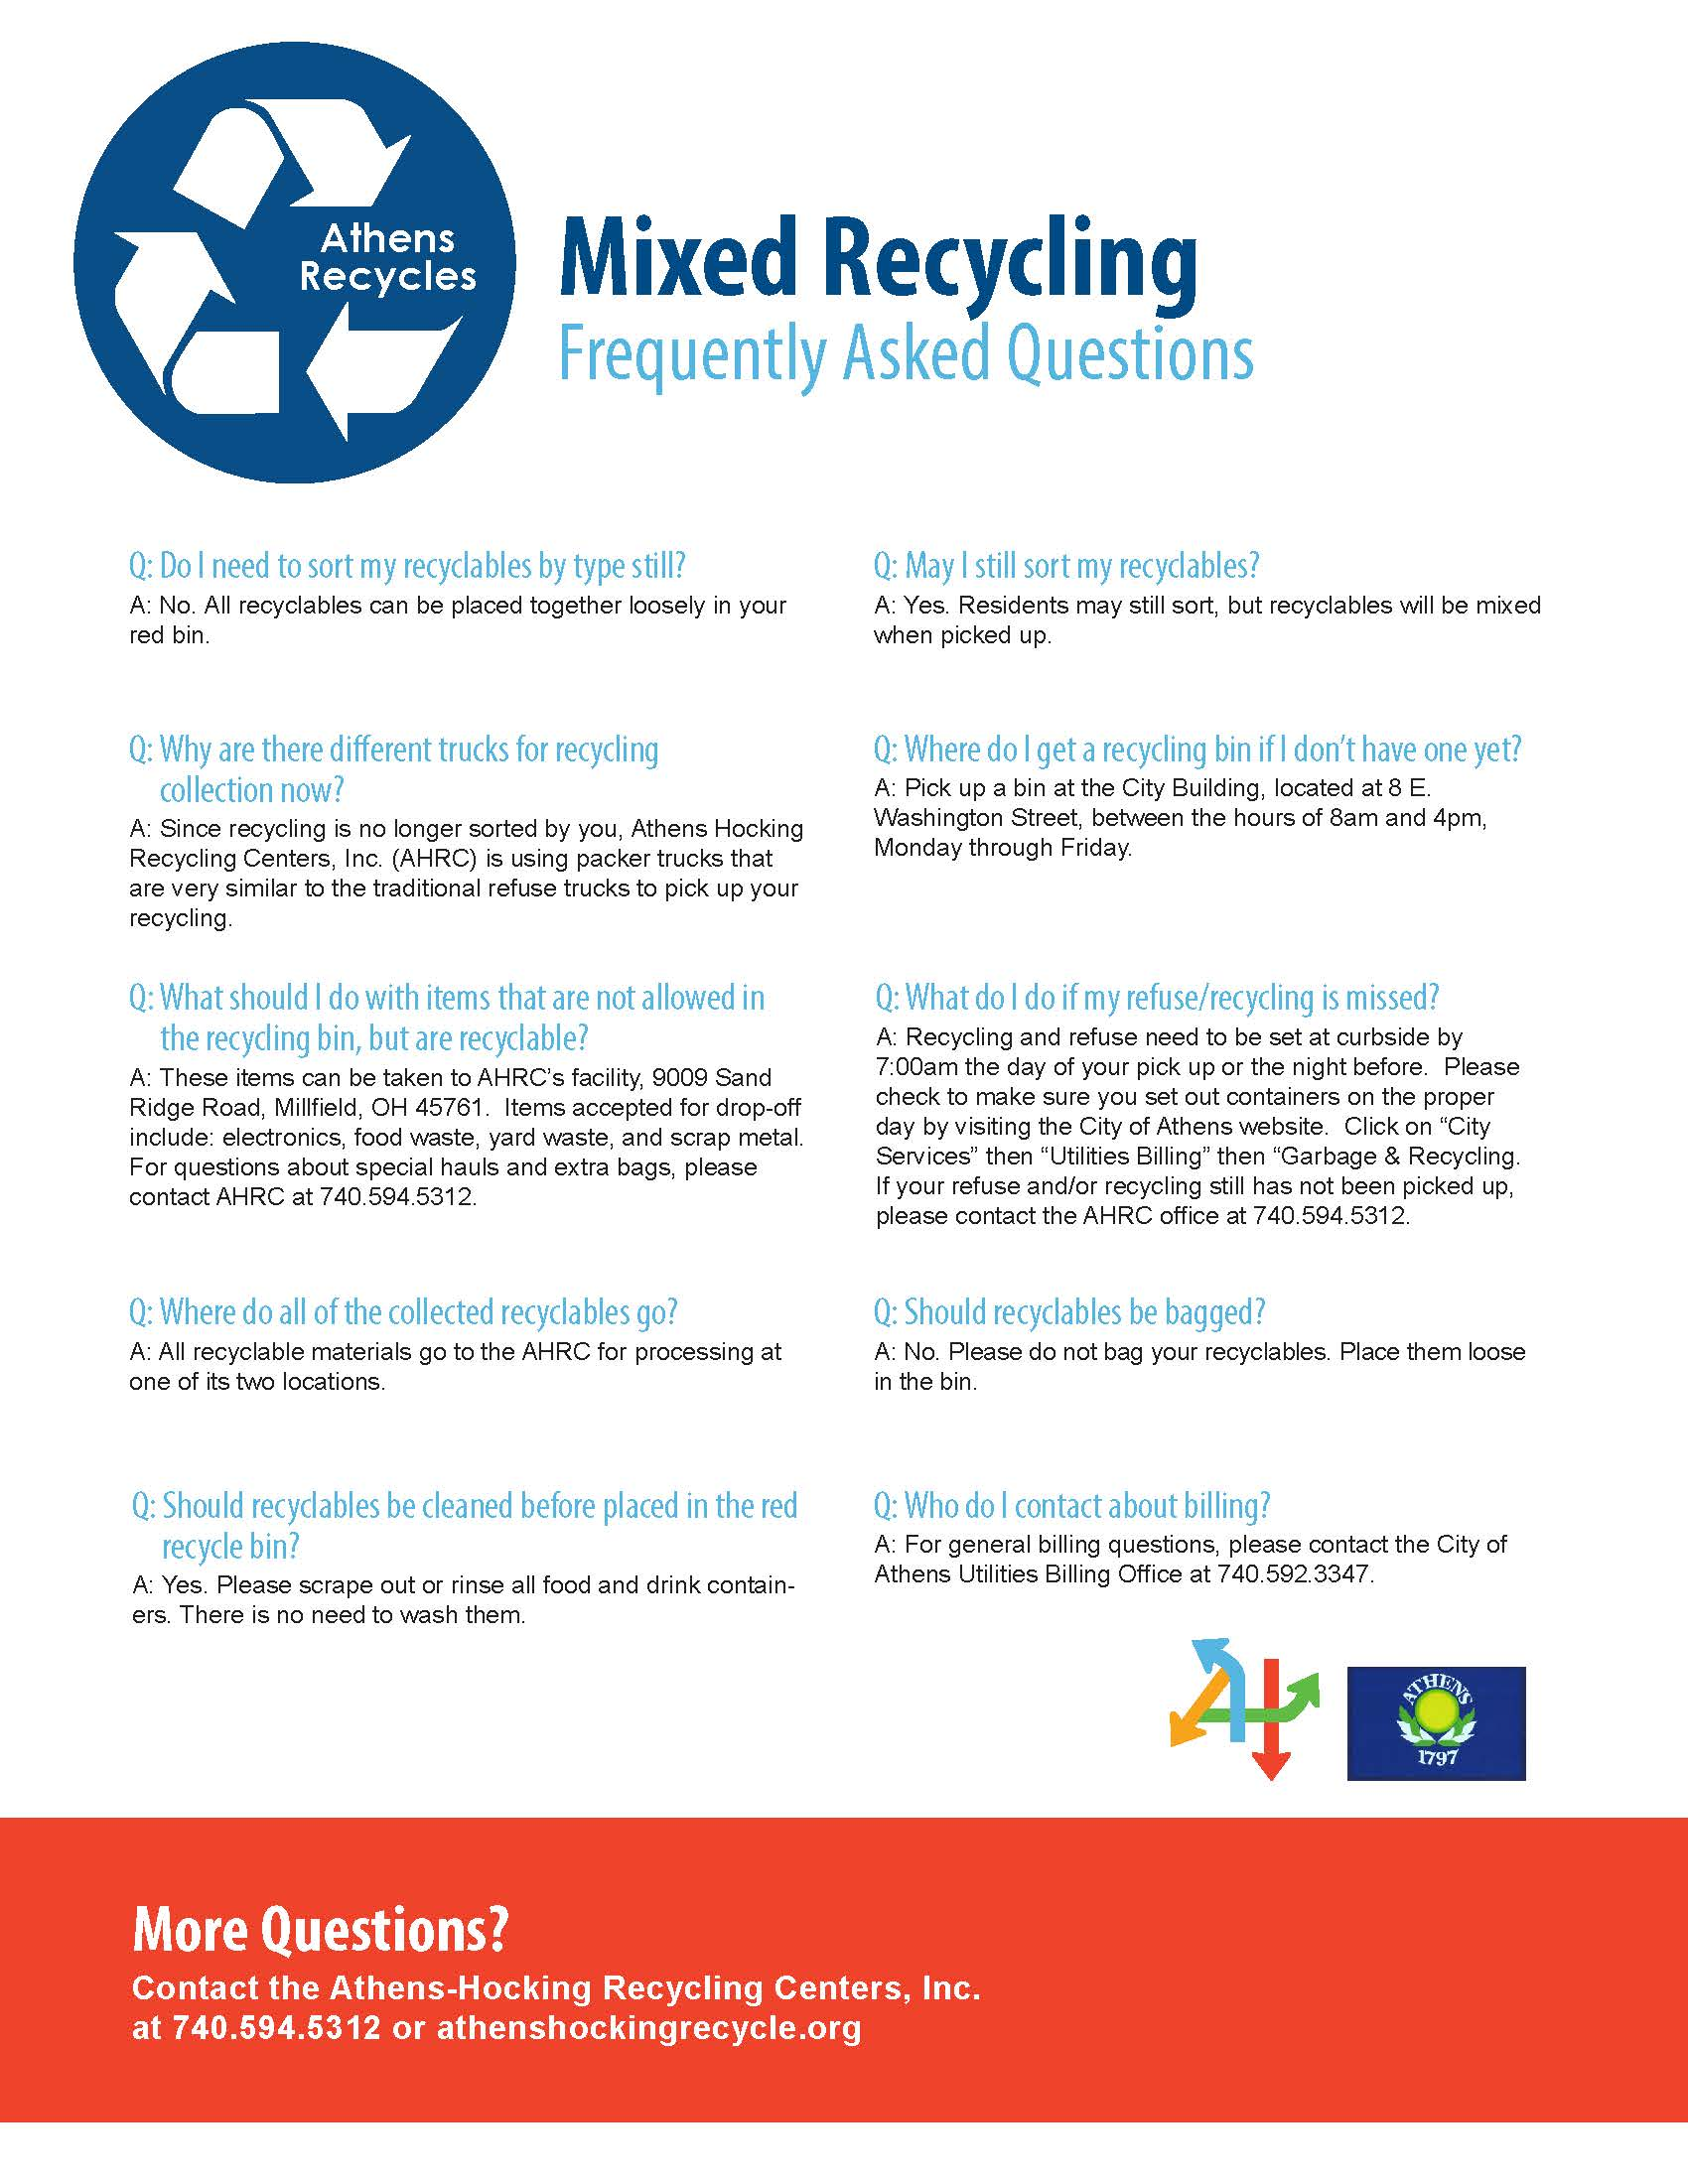 Mixed Recycling Flyer for City of Athens_Page_2.jpg